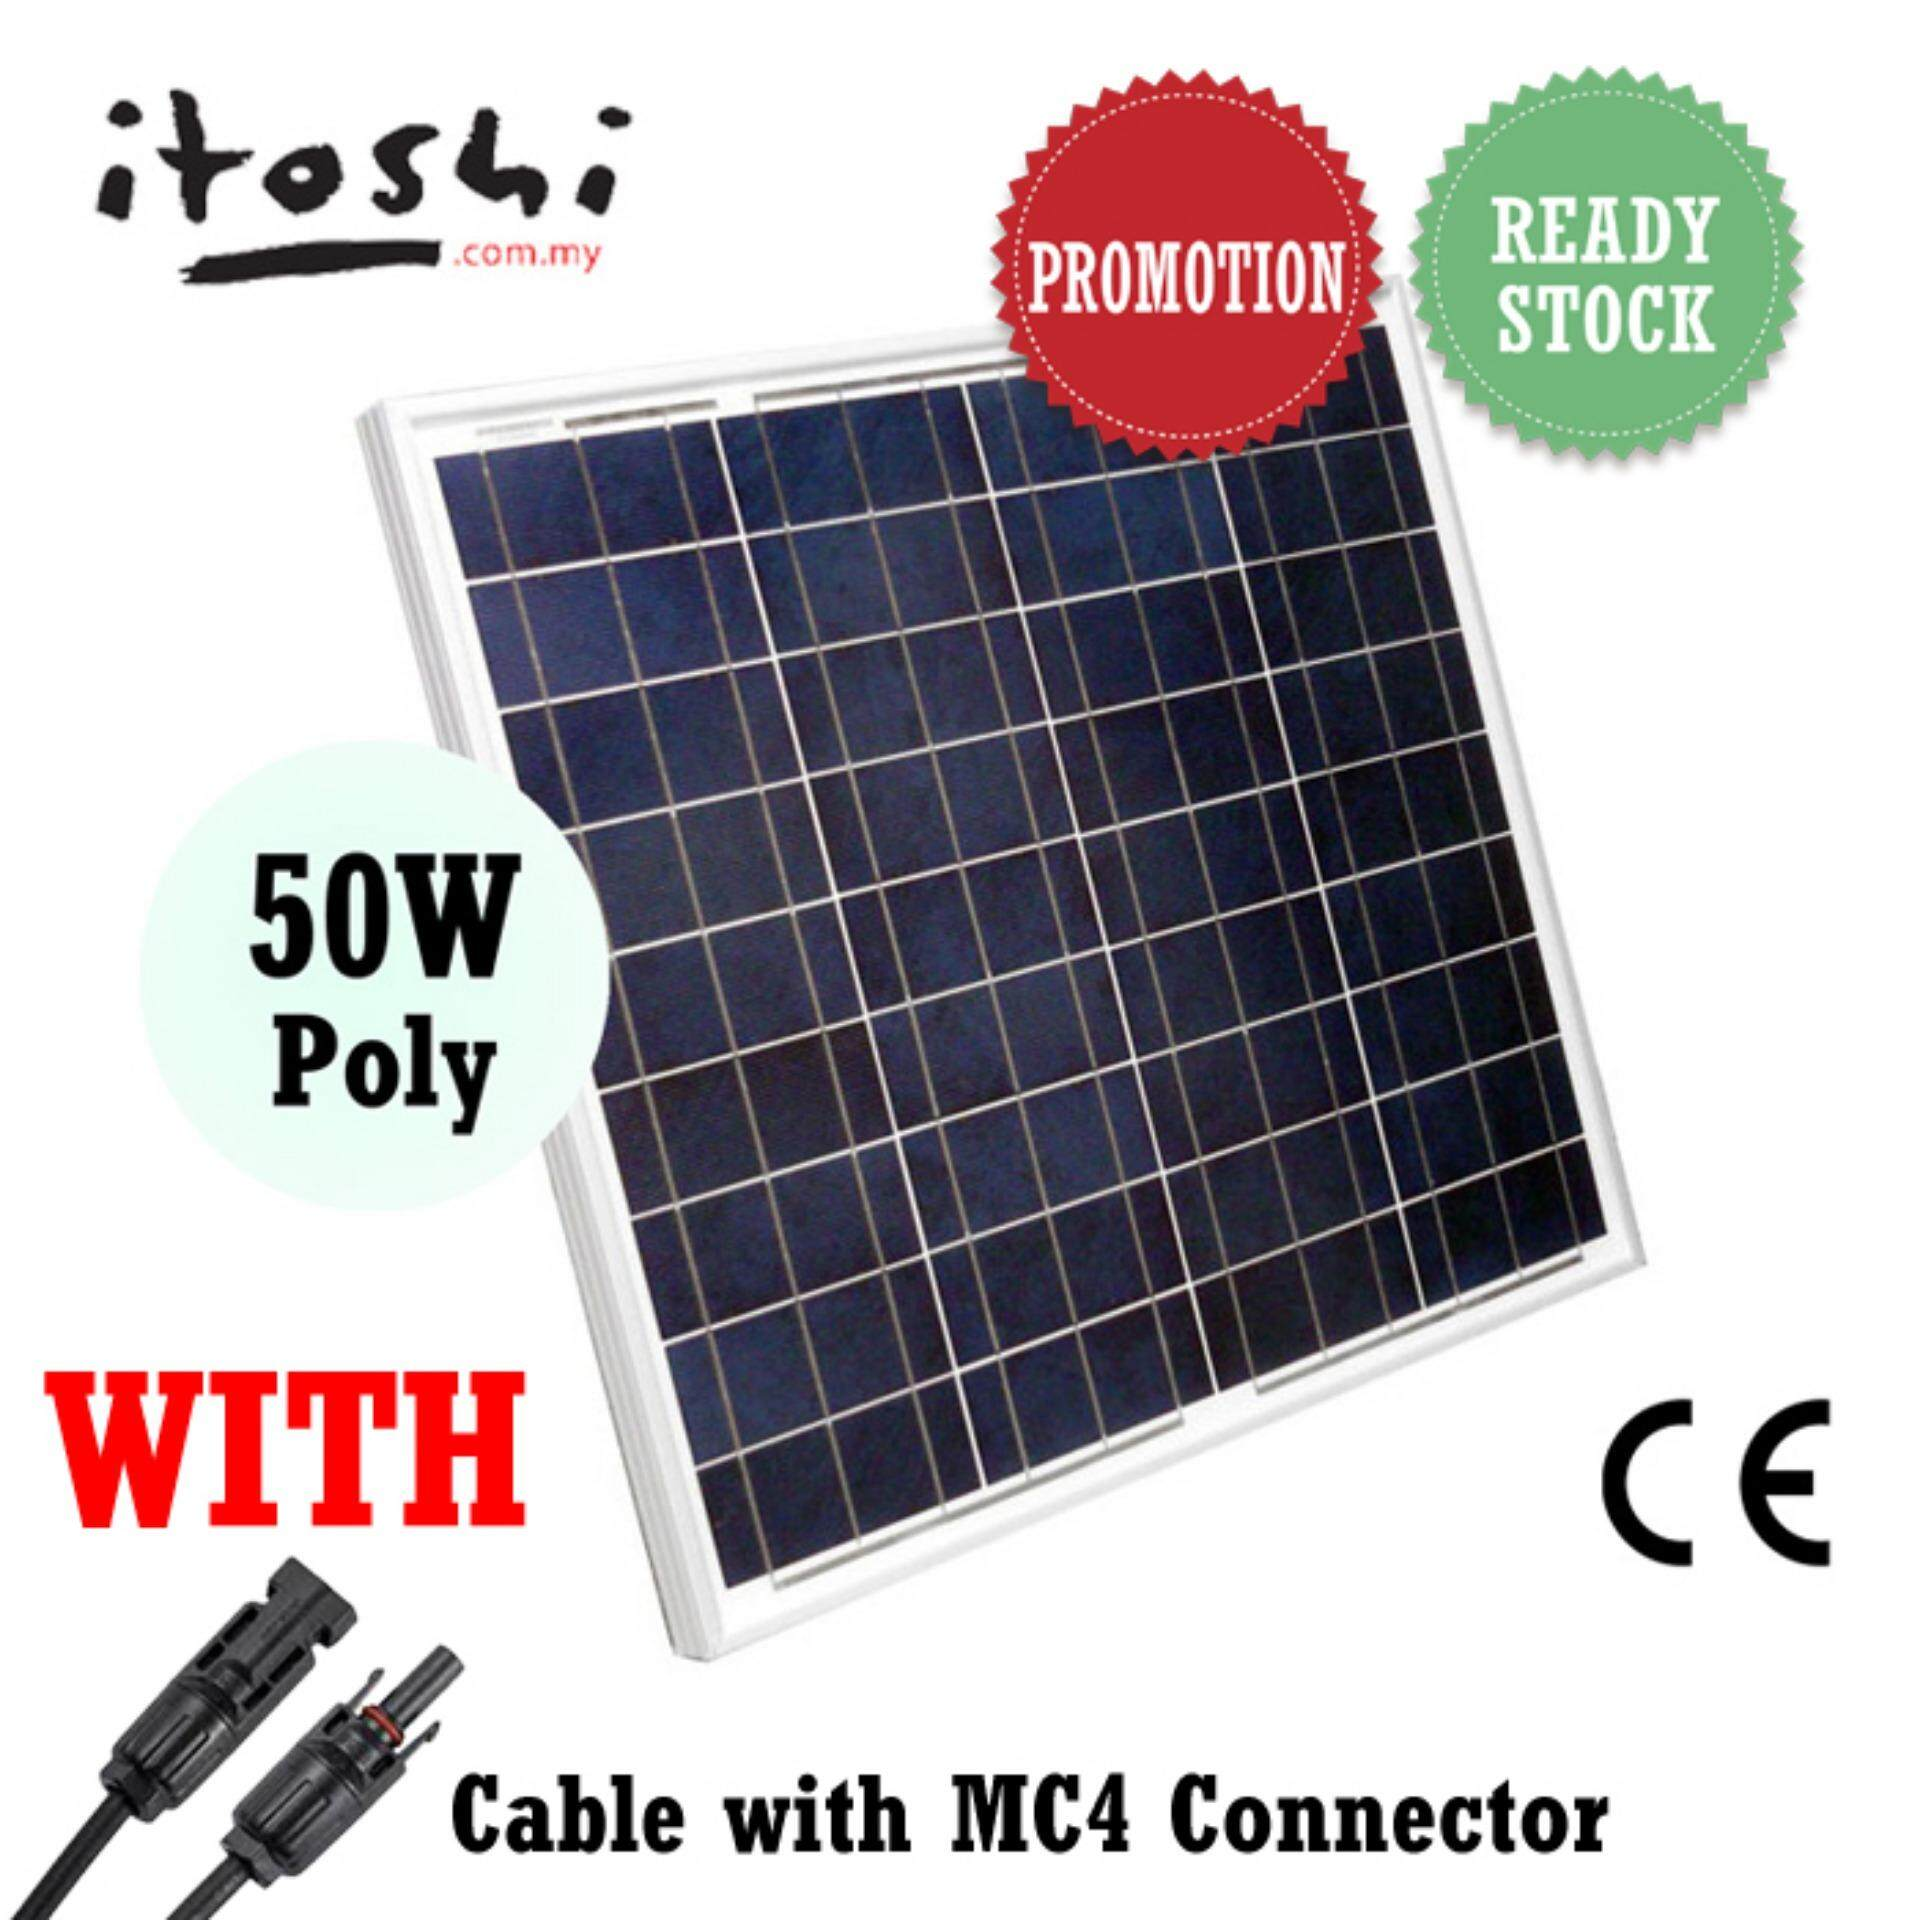 Solar Power Products For The Best Price In Malaysia 10w Panel Wiring Diagram 50w Poly Cell Pv Home Off Grid Orchard Swiftlet House With Cable